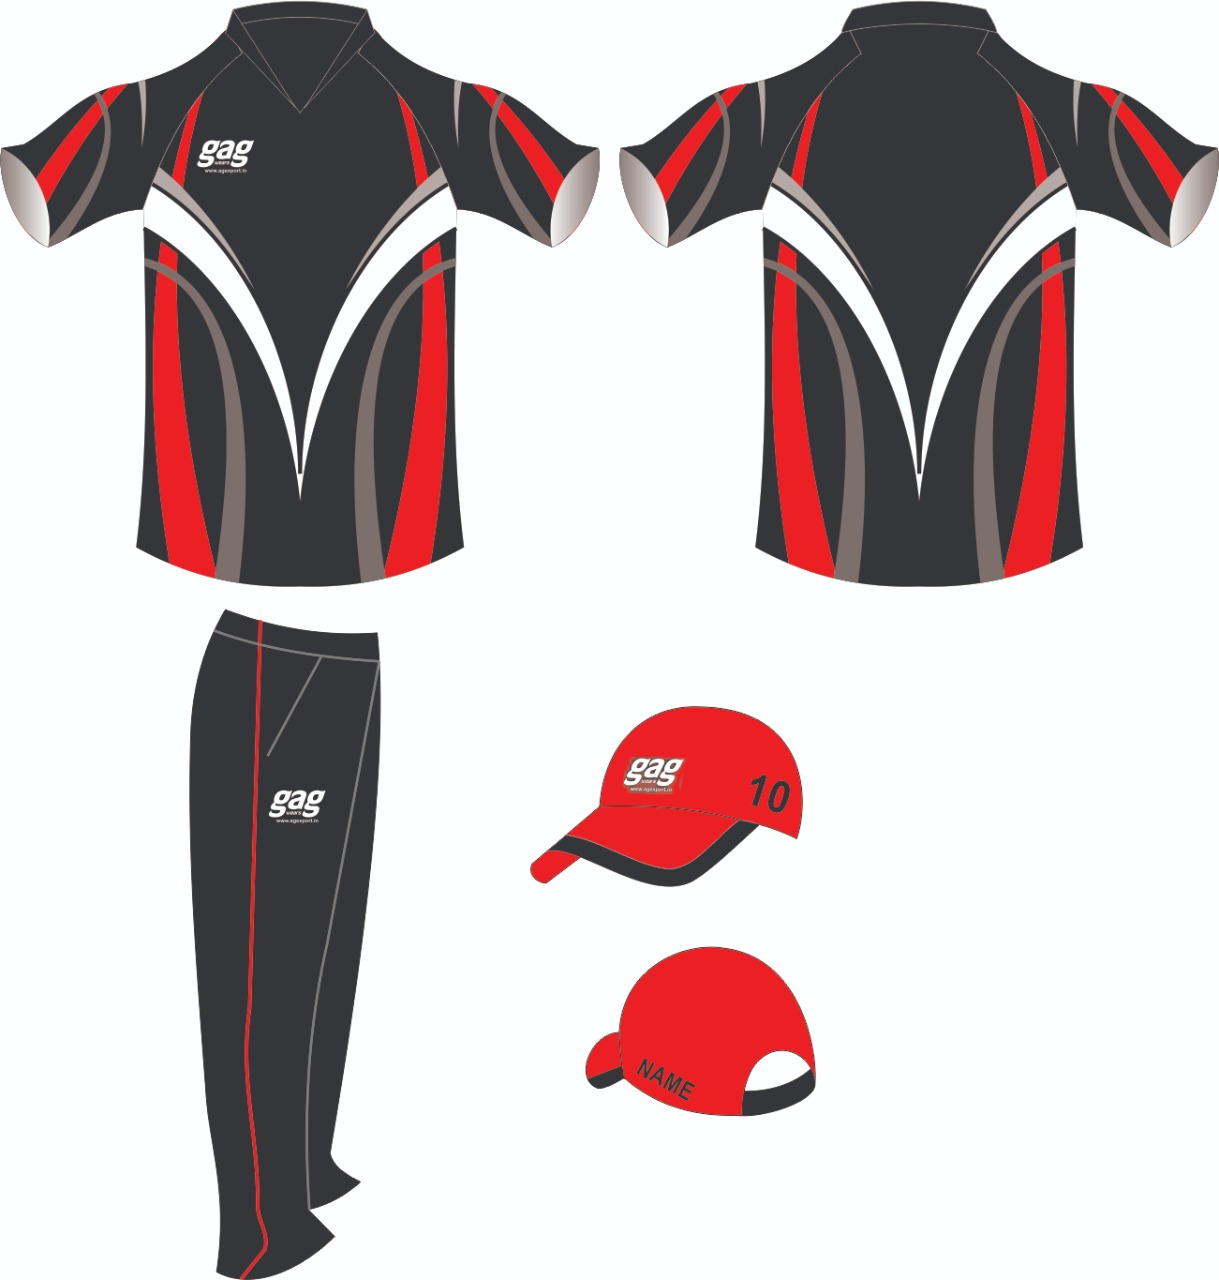 Cricket Clothing Manufacturers in Jalandhar in Bahrain